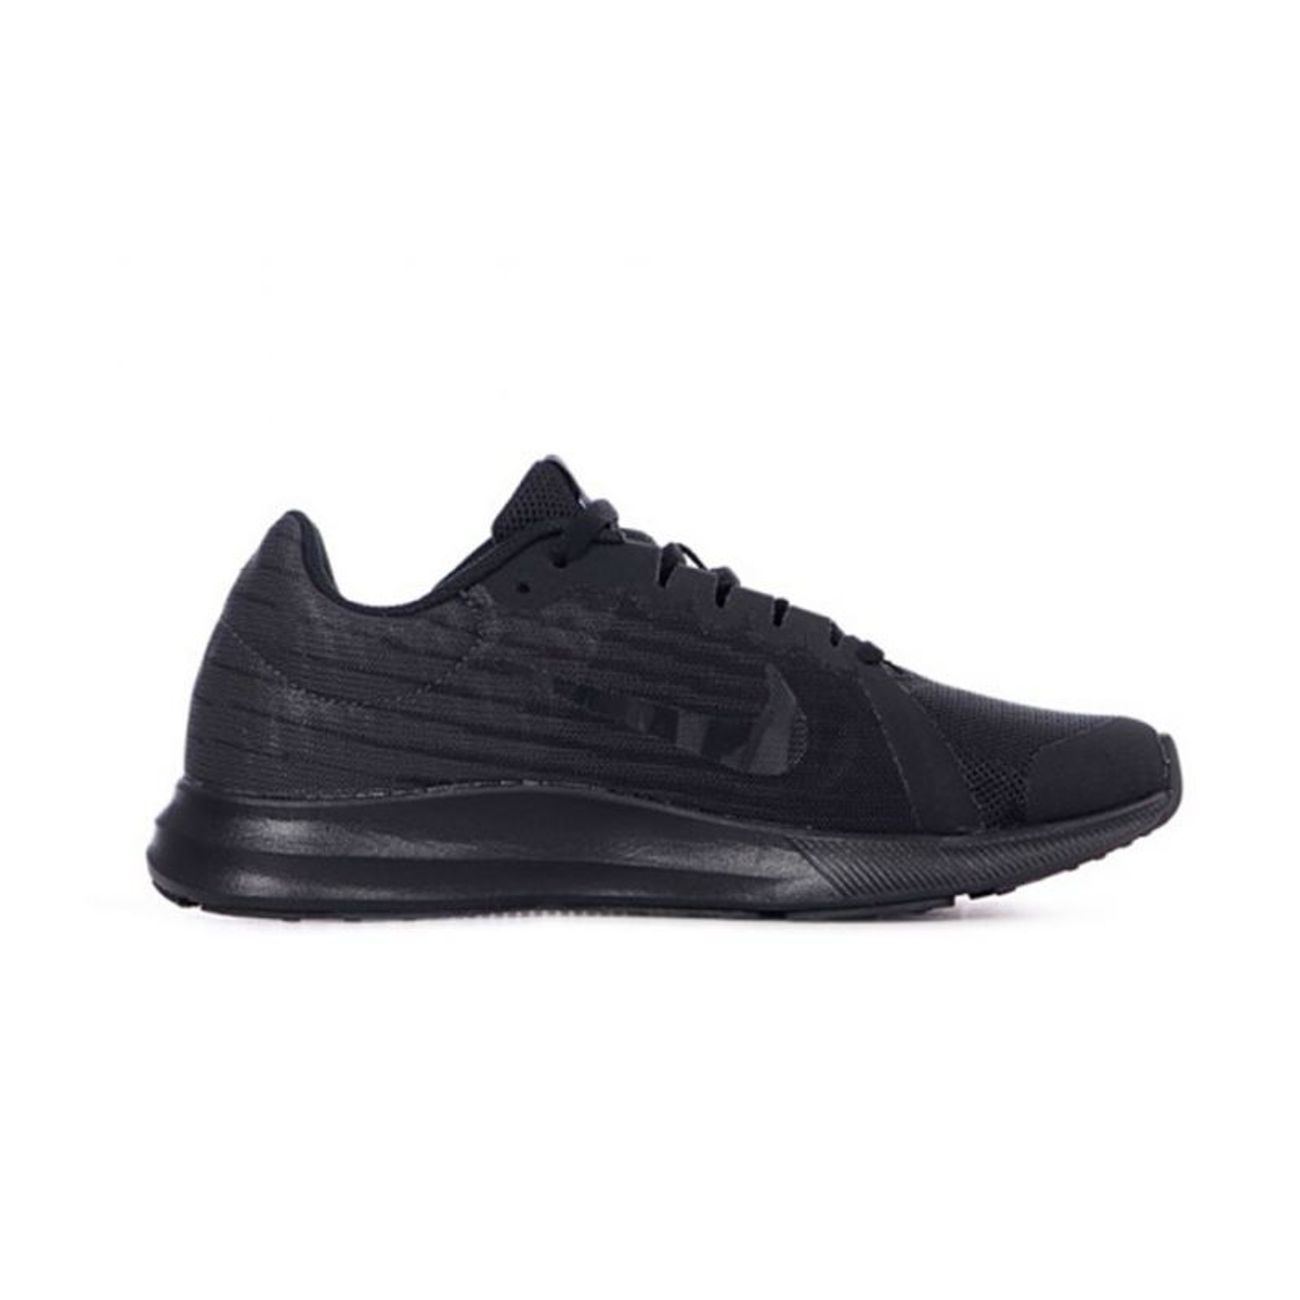 Ni922853 Adulte 8 Downshifther Negro Padel Junior Gs Nike 006 n0PkO8w